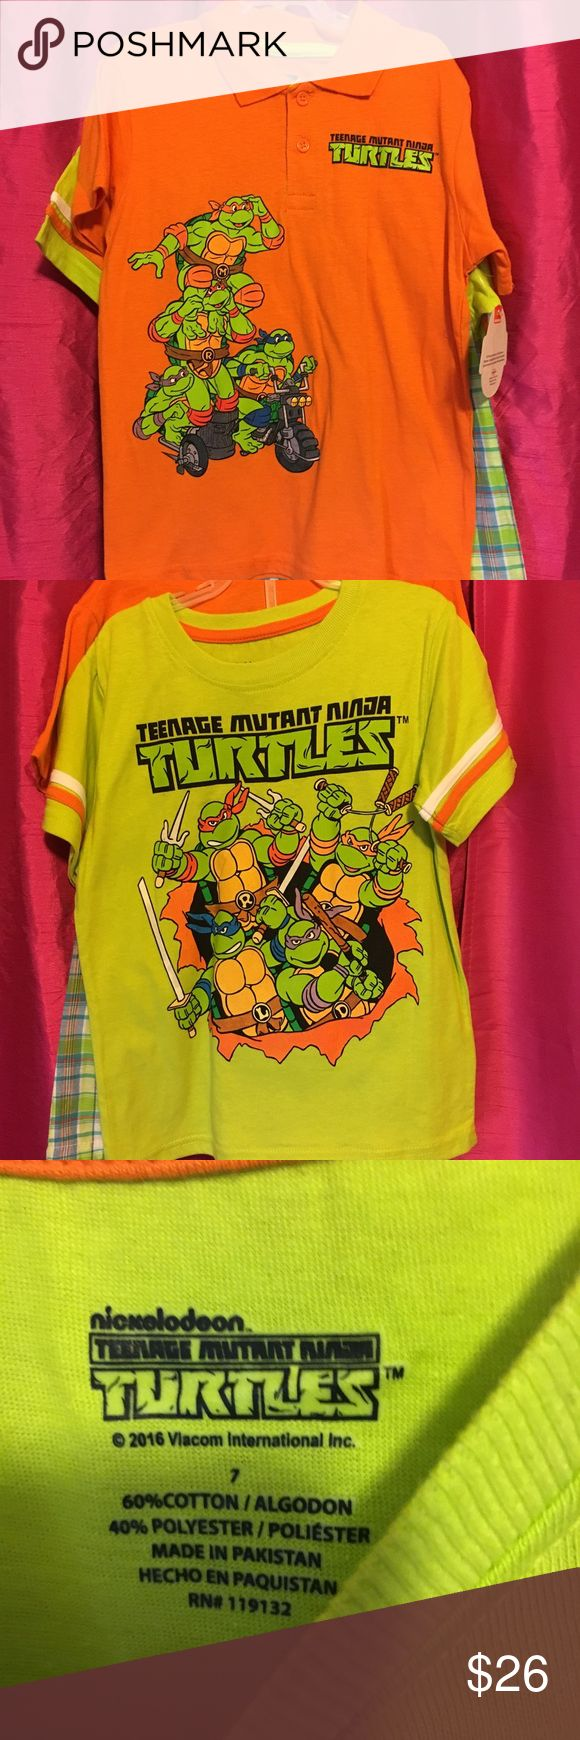 NWT BOYS 3PC SET NINJA TURTLES BY NICKELODEON This is a boys three piece set comes with shorts tonight stops by Nickelodeon and it's ninja turtles bright colors neon orange neon yellow in a boys size 7 and the shorts are elastic so they will fit smaller or bigger Nickelodeon Matching Sets